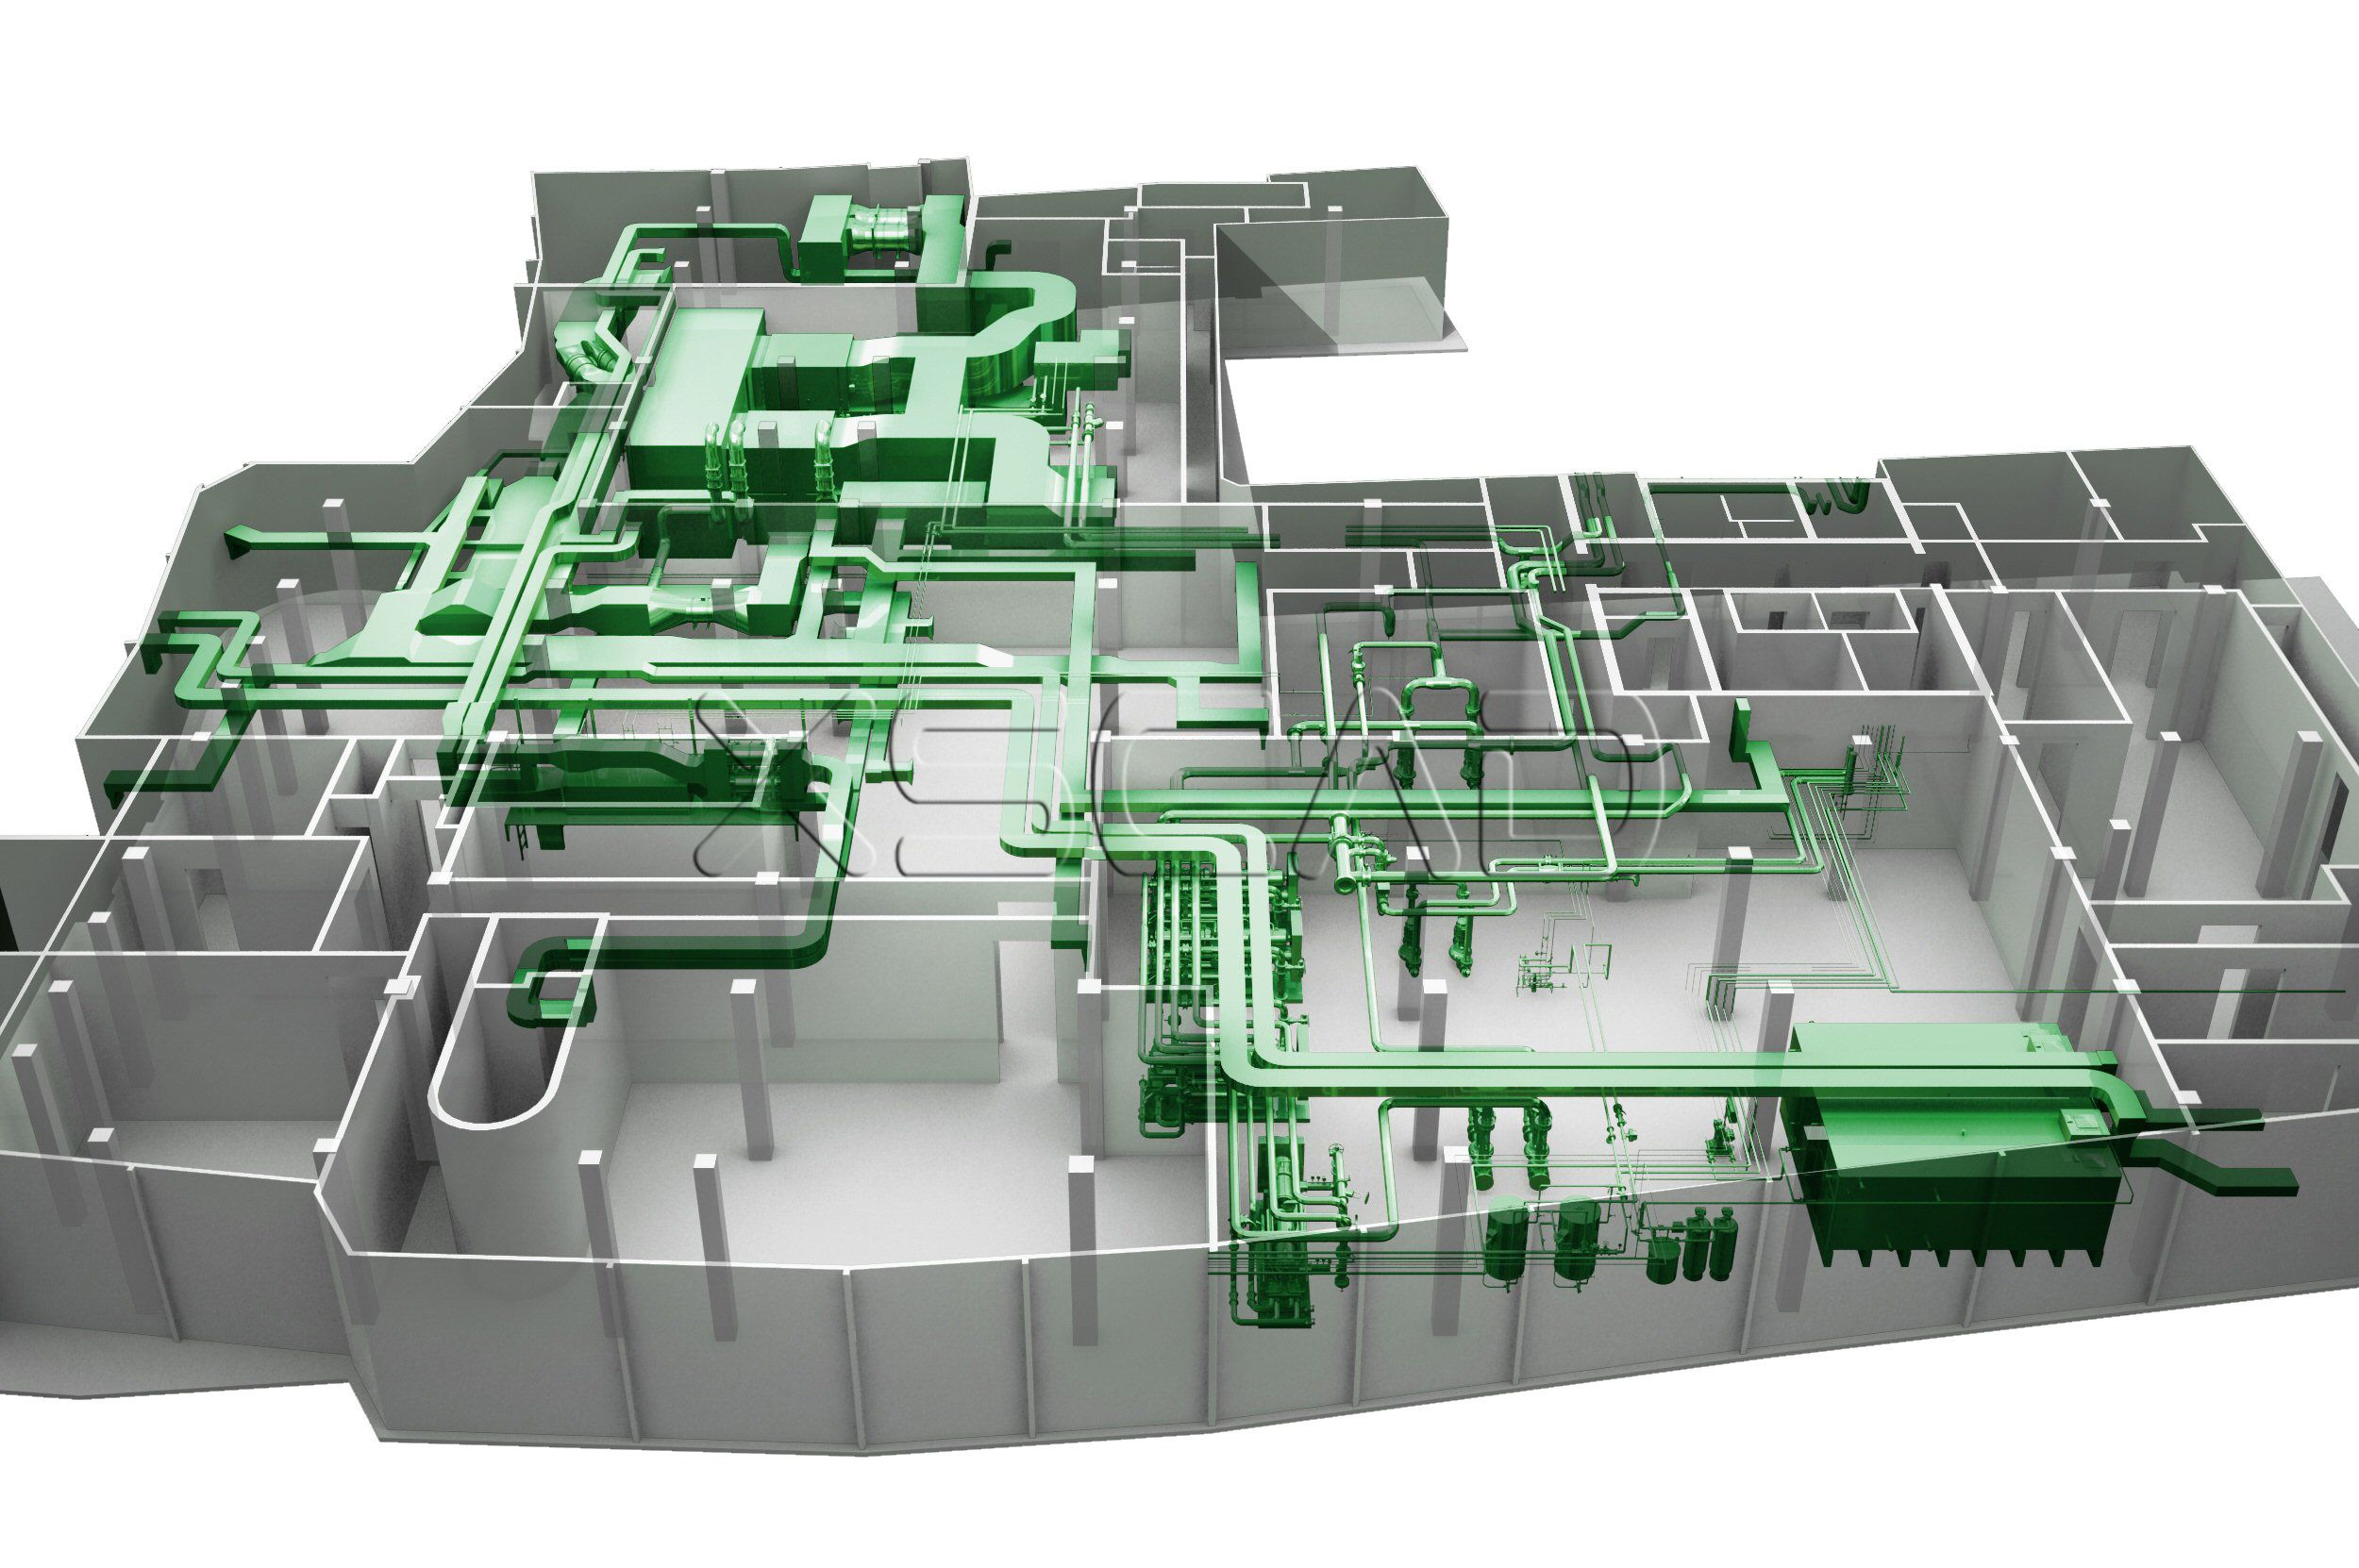 small resolution of with over 10 years of experience xs cad limited offers highly professional revit mep modeling architectural cad services architectural drafting